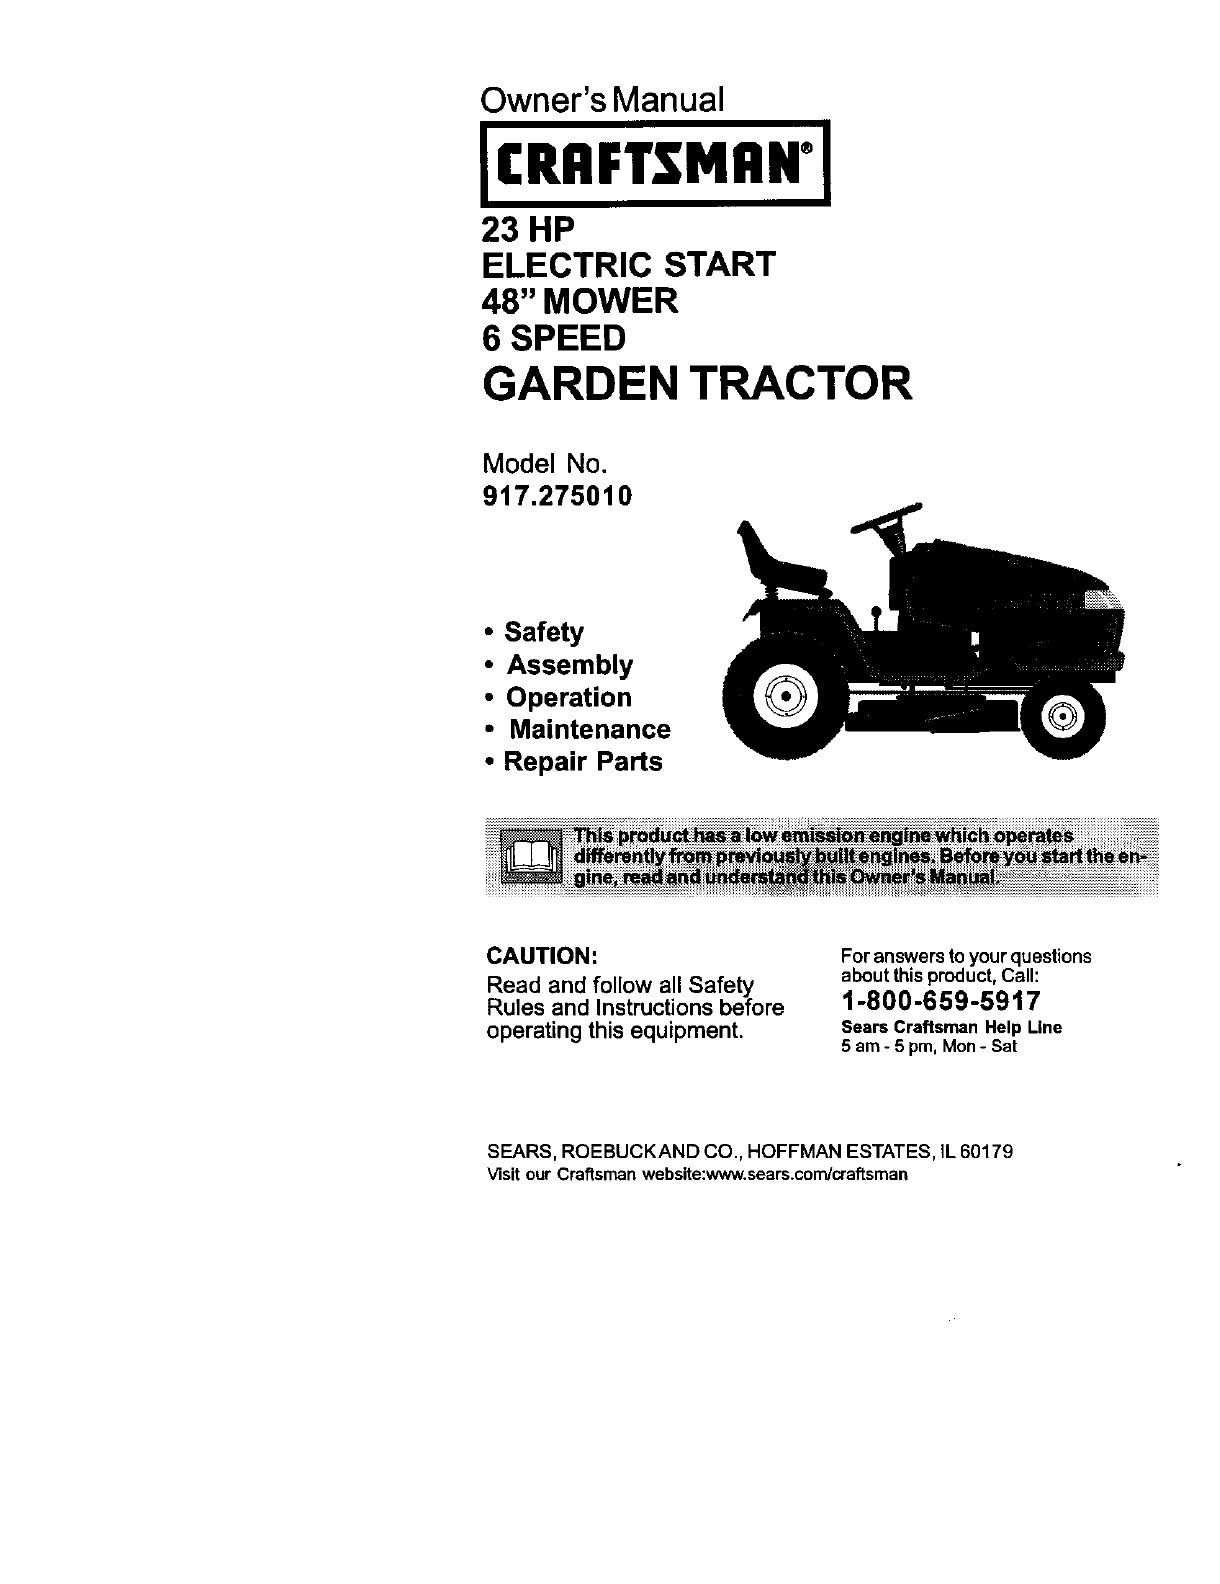 Craftsman 917275010 User Manual LAWN TRACTOR Manuals And